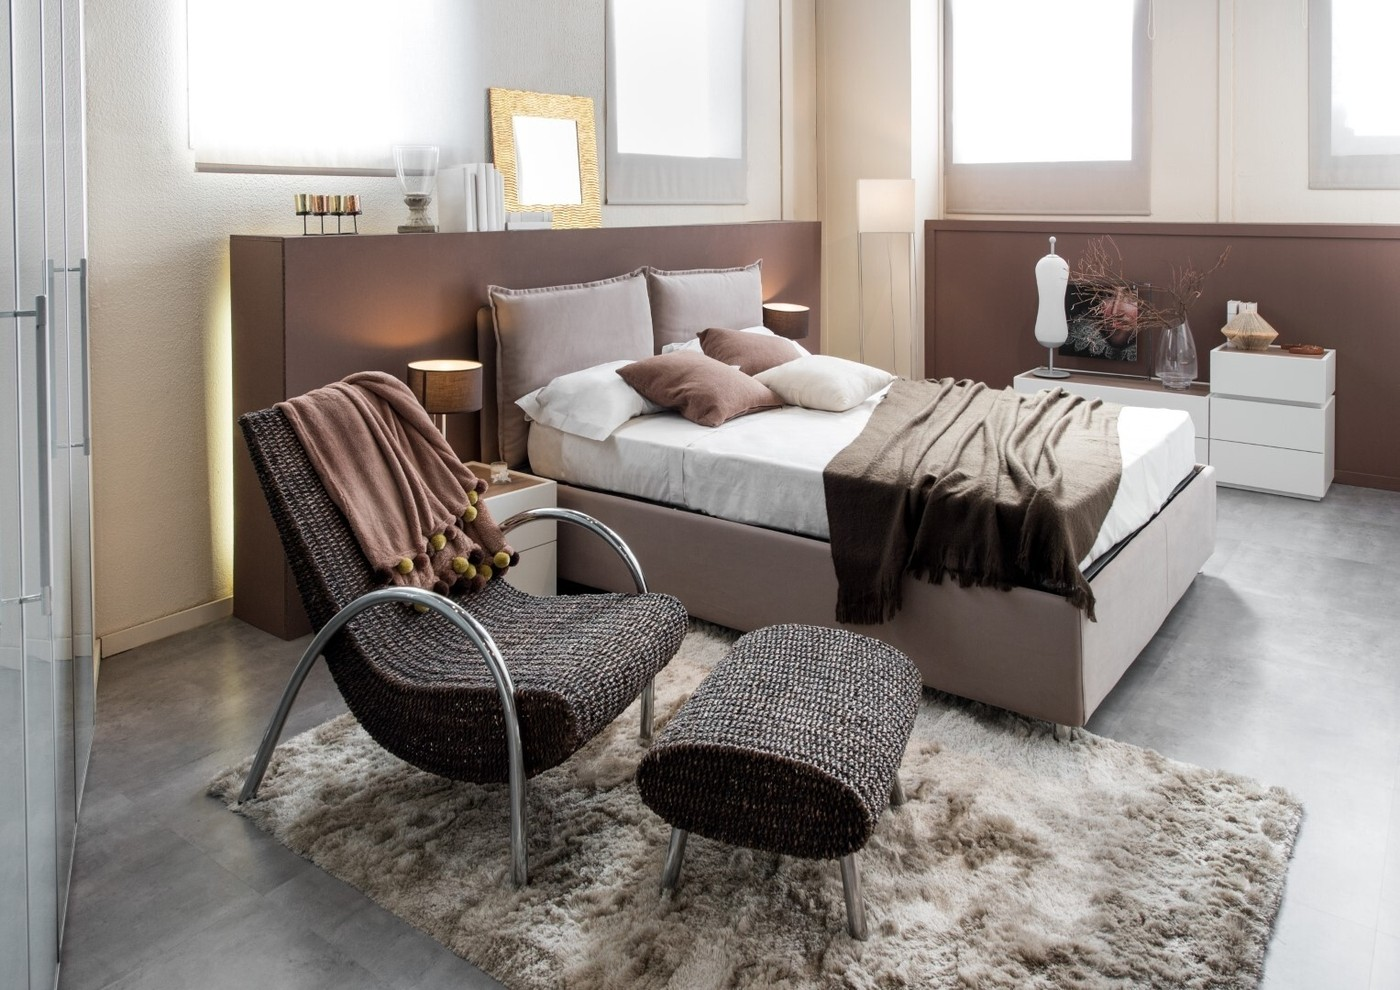 Bedroom With Recliner Chair